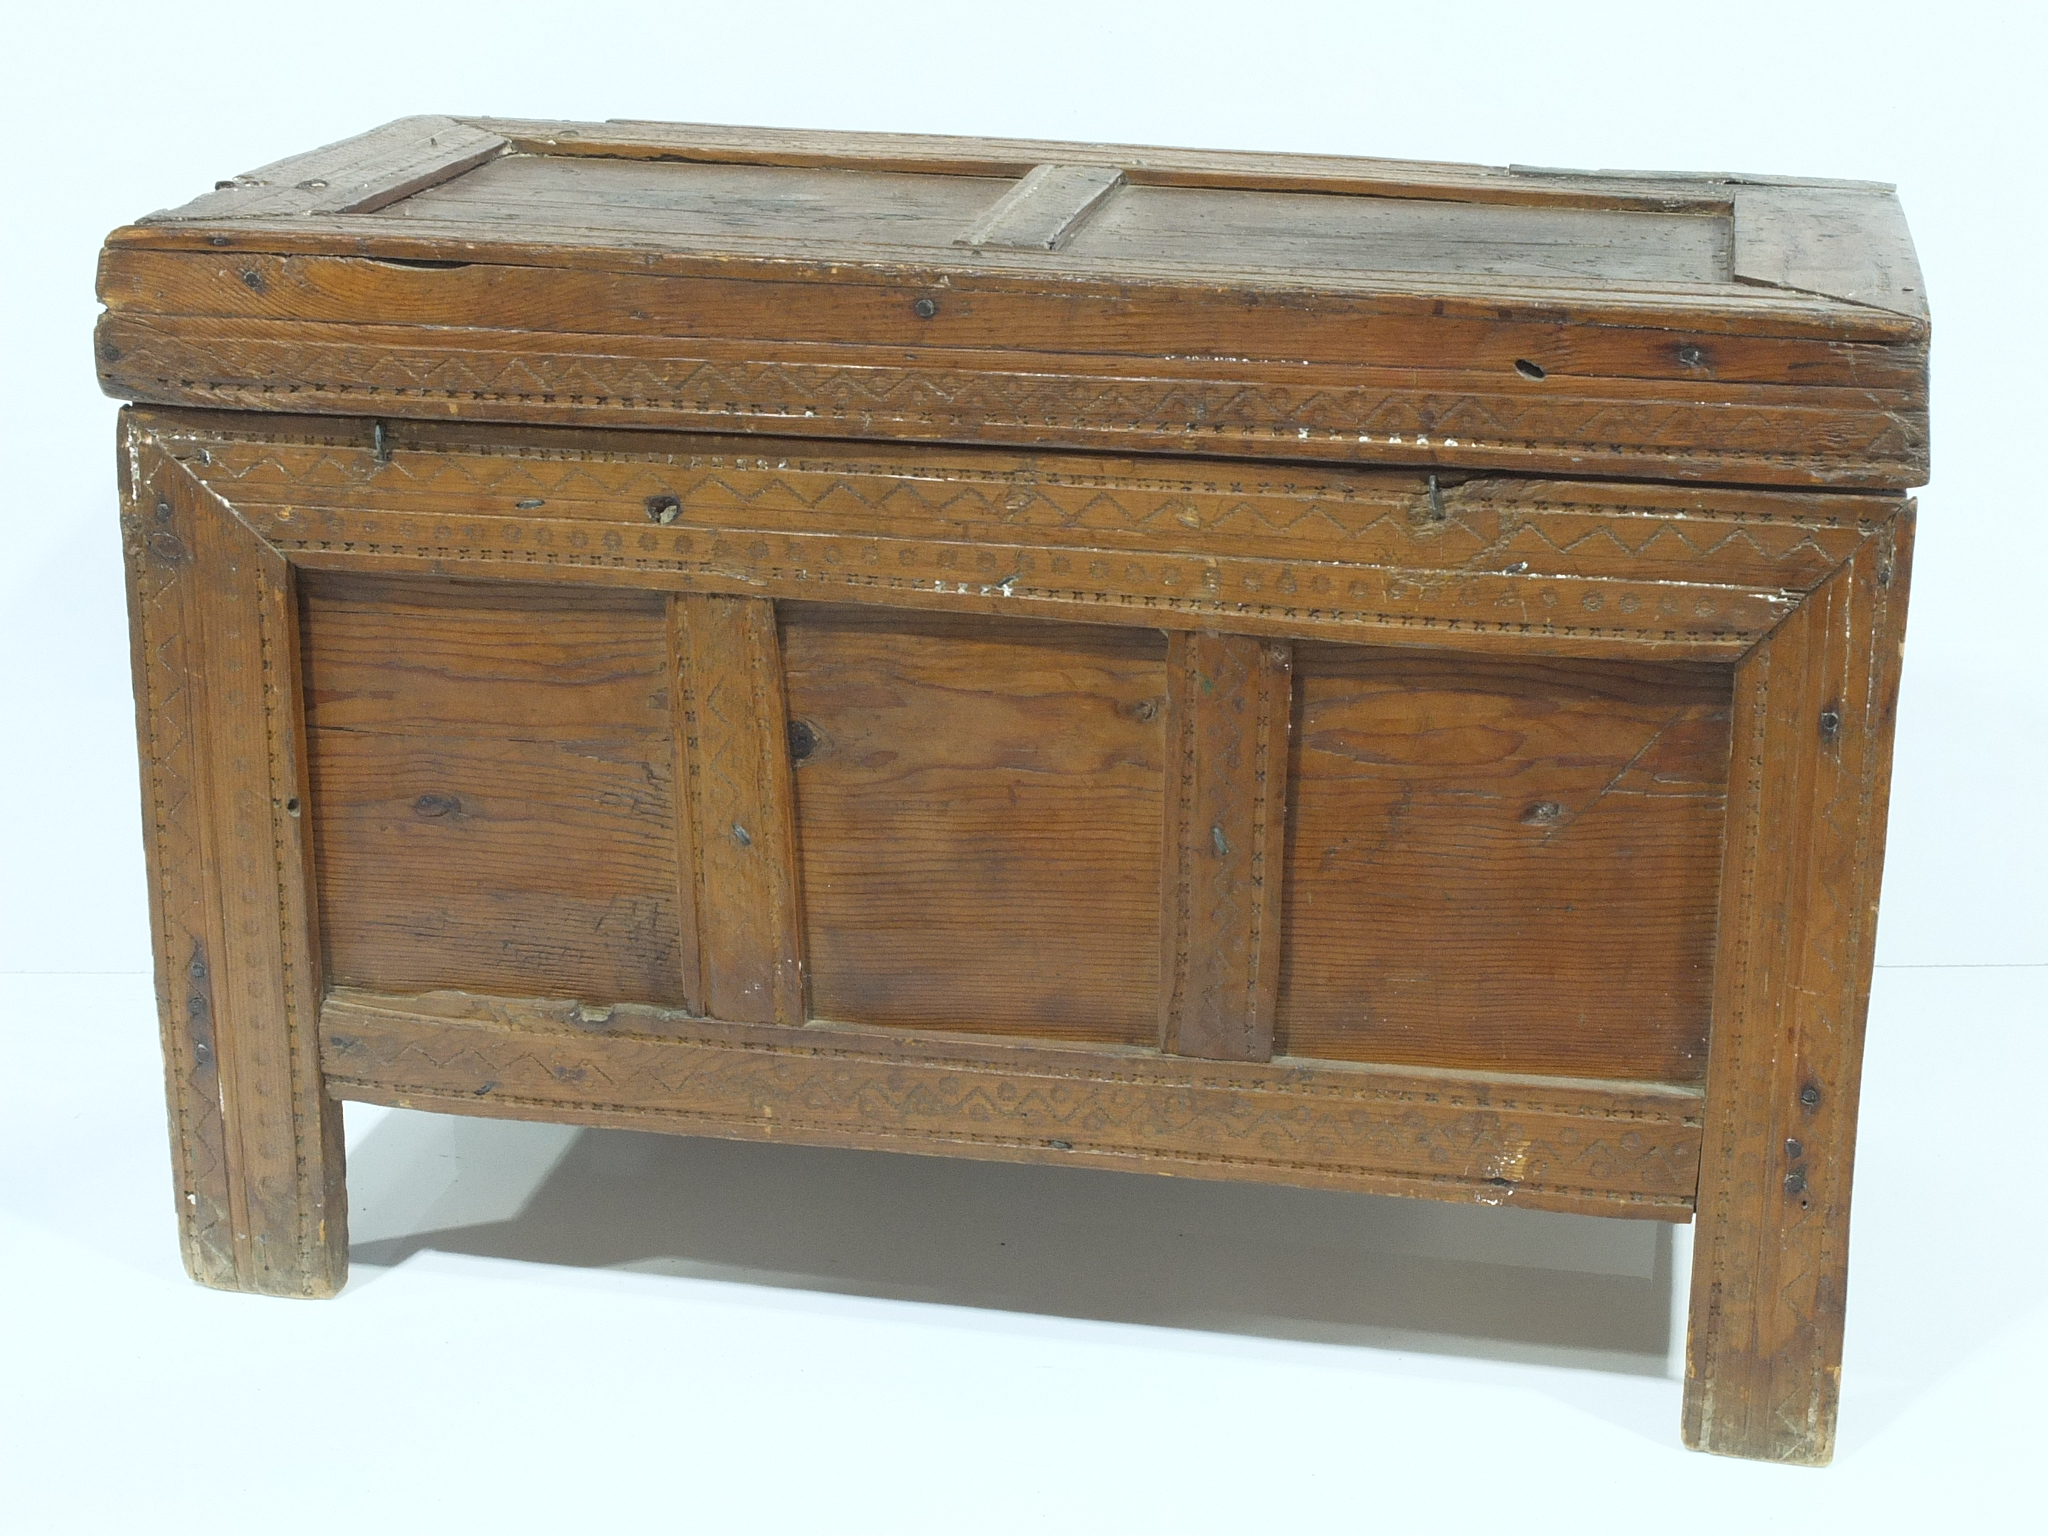 'Antique Indonesian Cedar Chest'